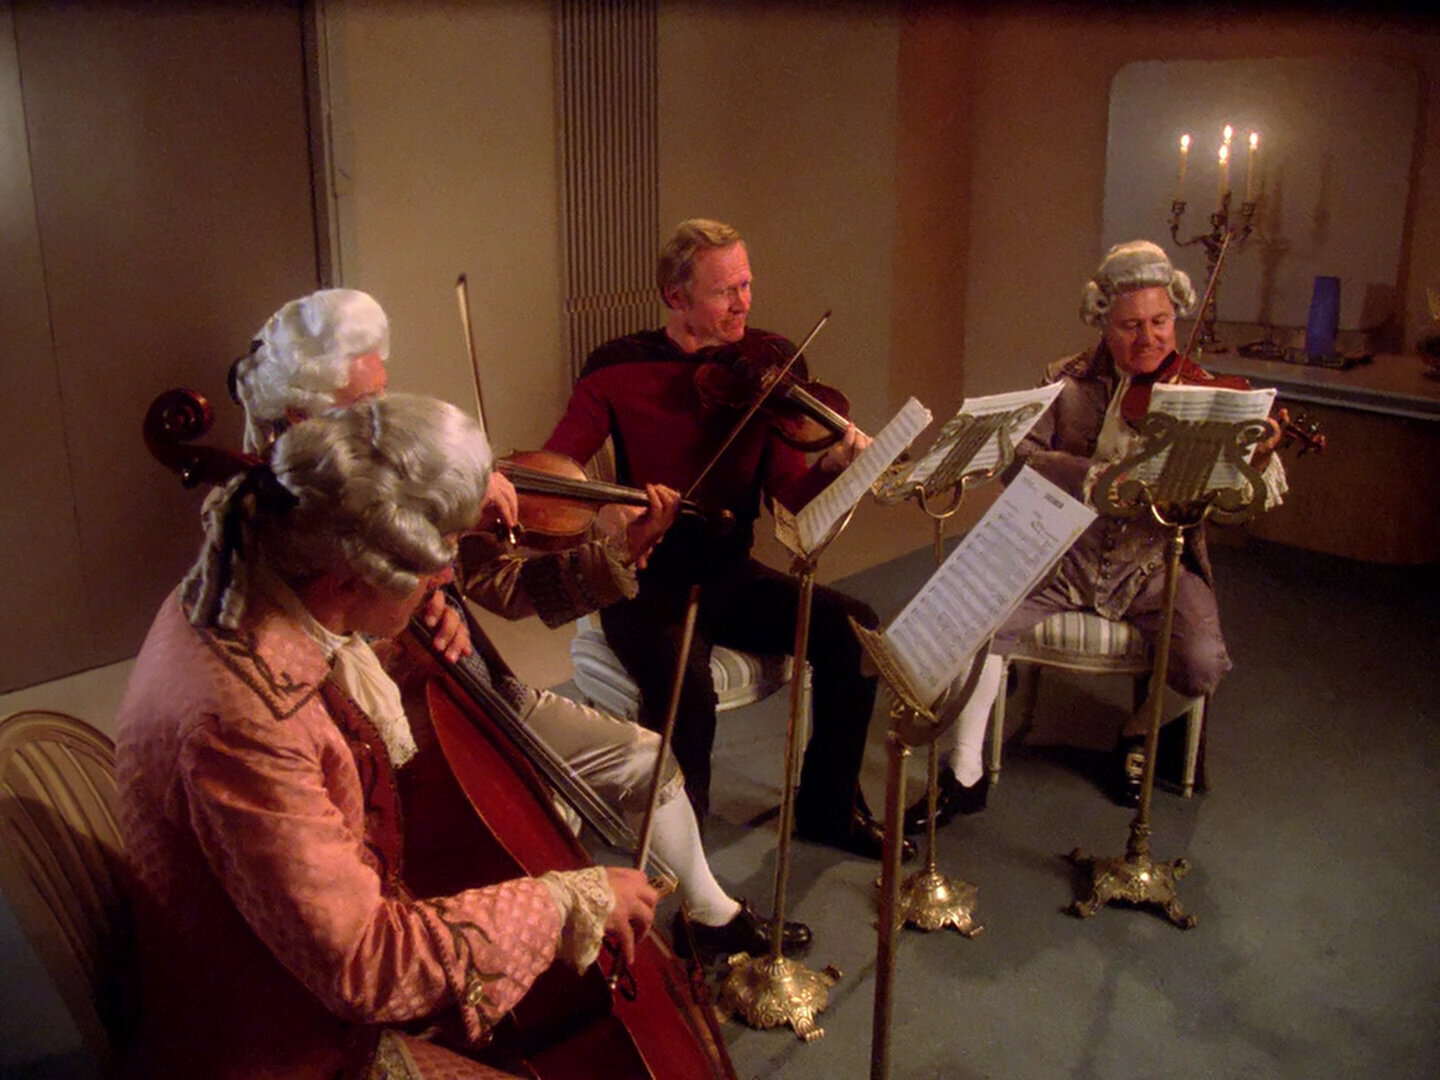 """A fantasy concert for a crew member of the Enterprise from """"Star Trek: The Next Generation"""" season one episode """"Where No One Has Gone Before."""""""